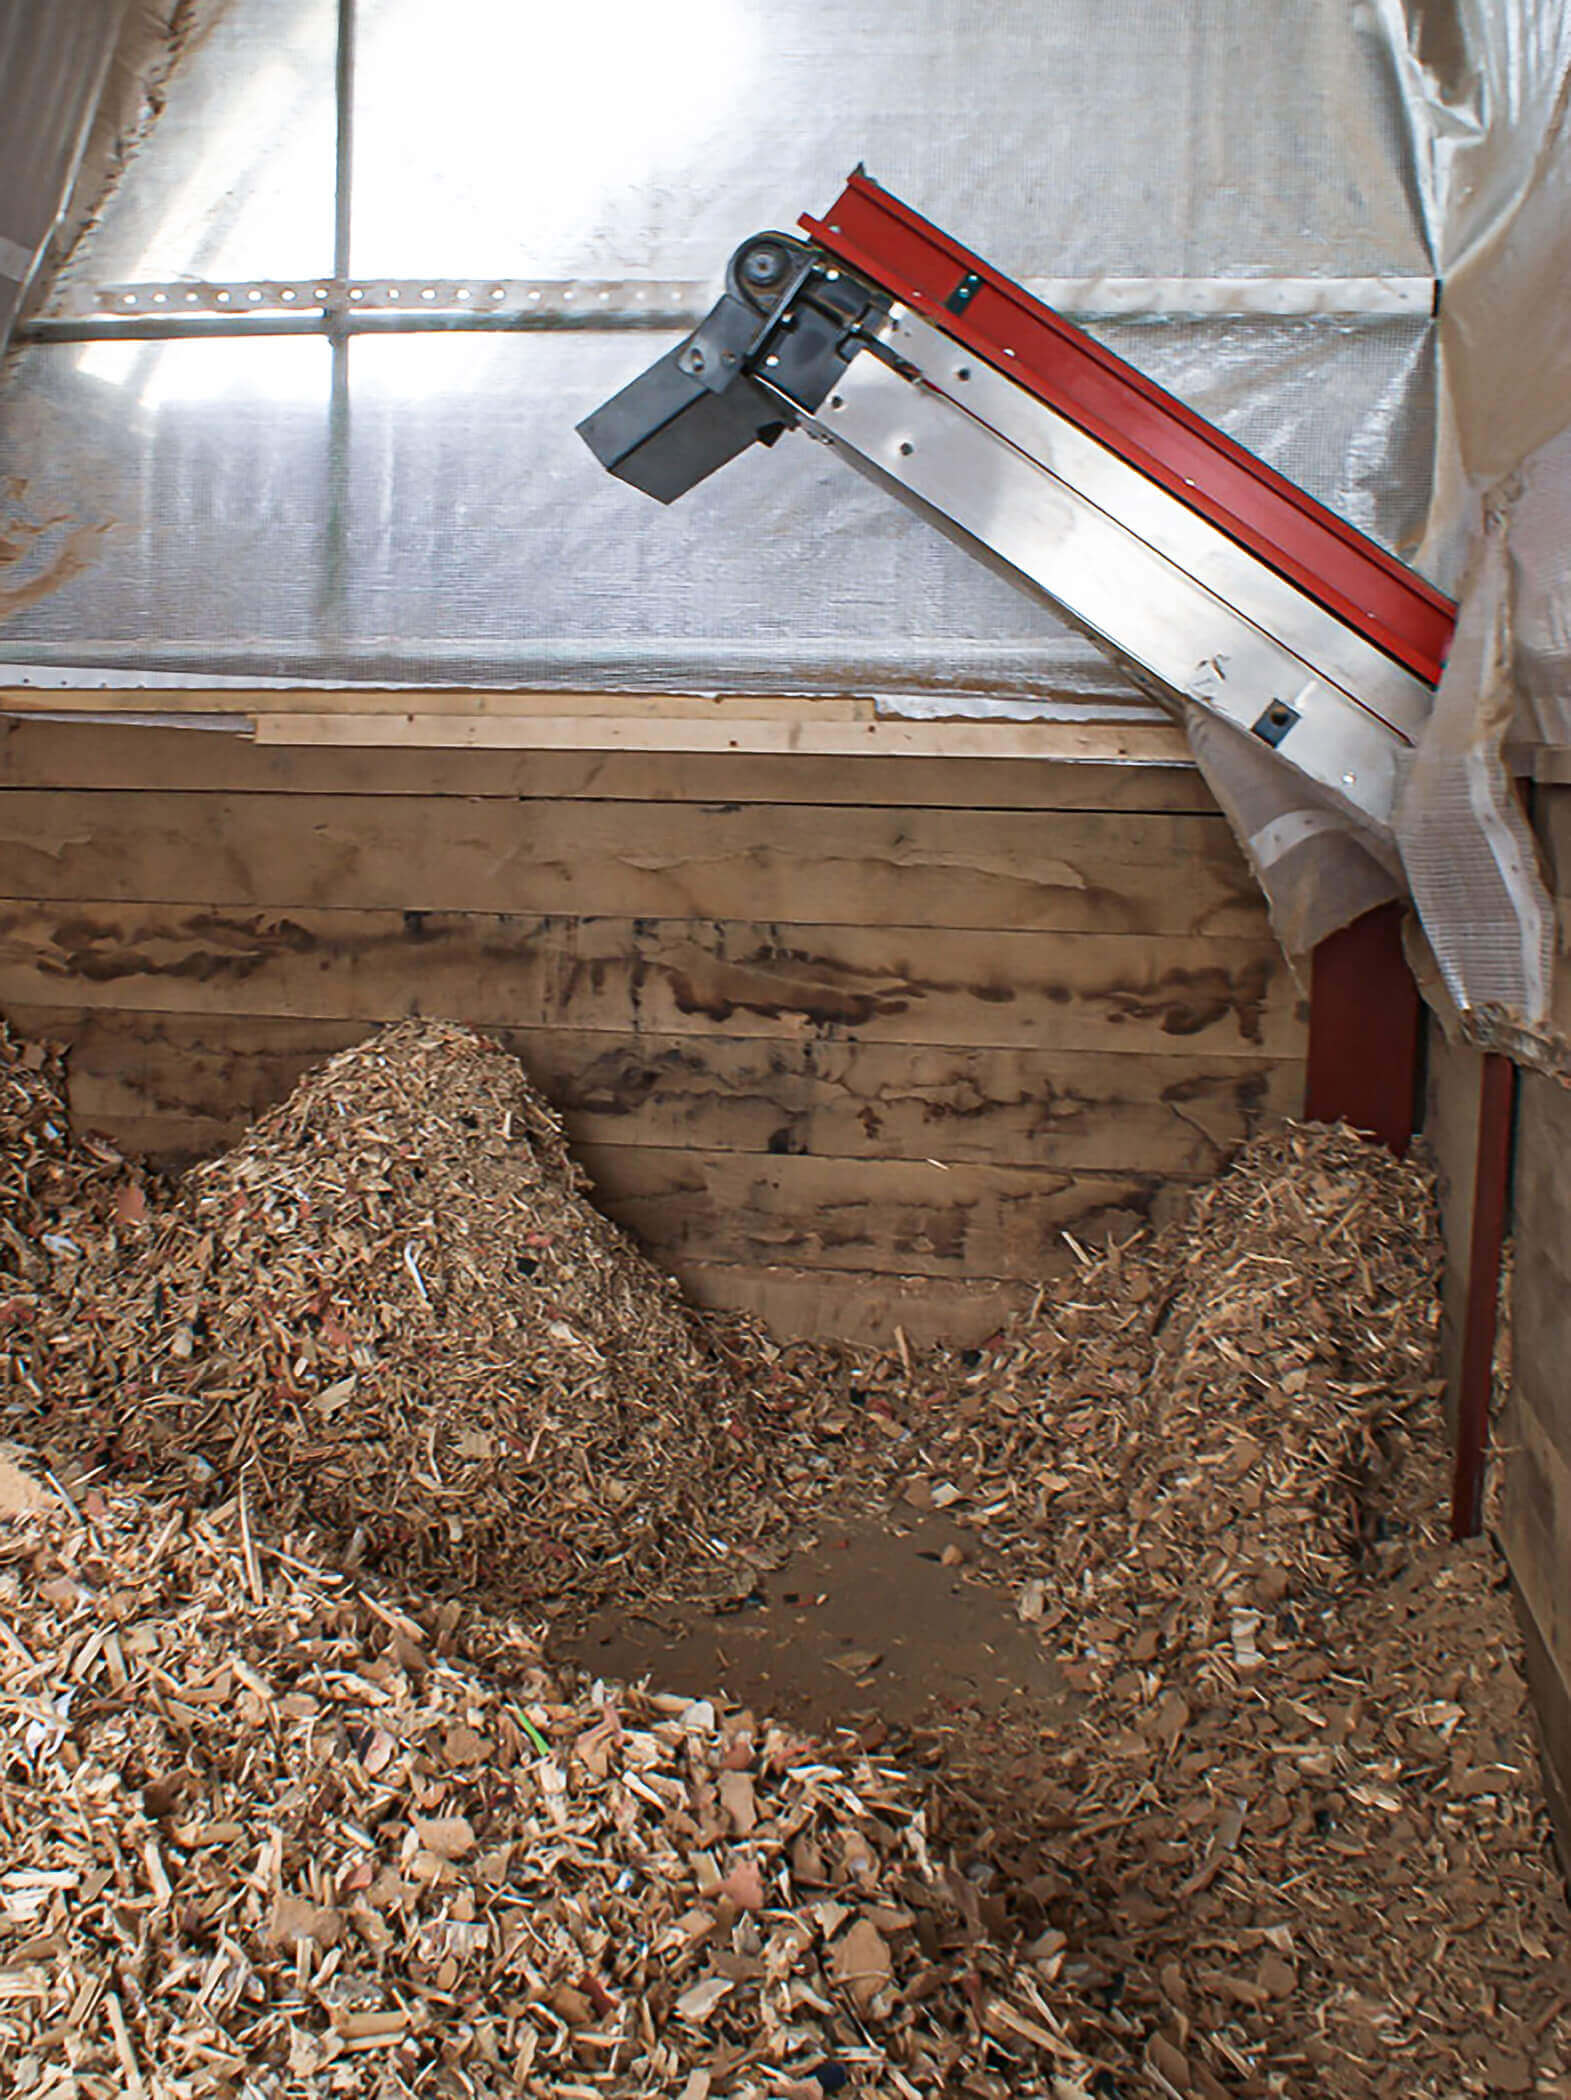 The shredded wood set is transported into the bunker via conveyor belt